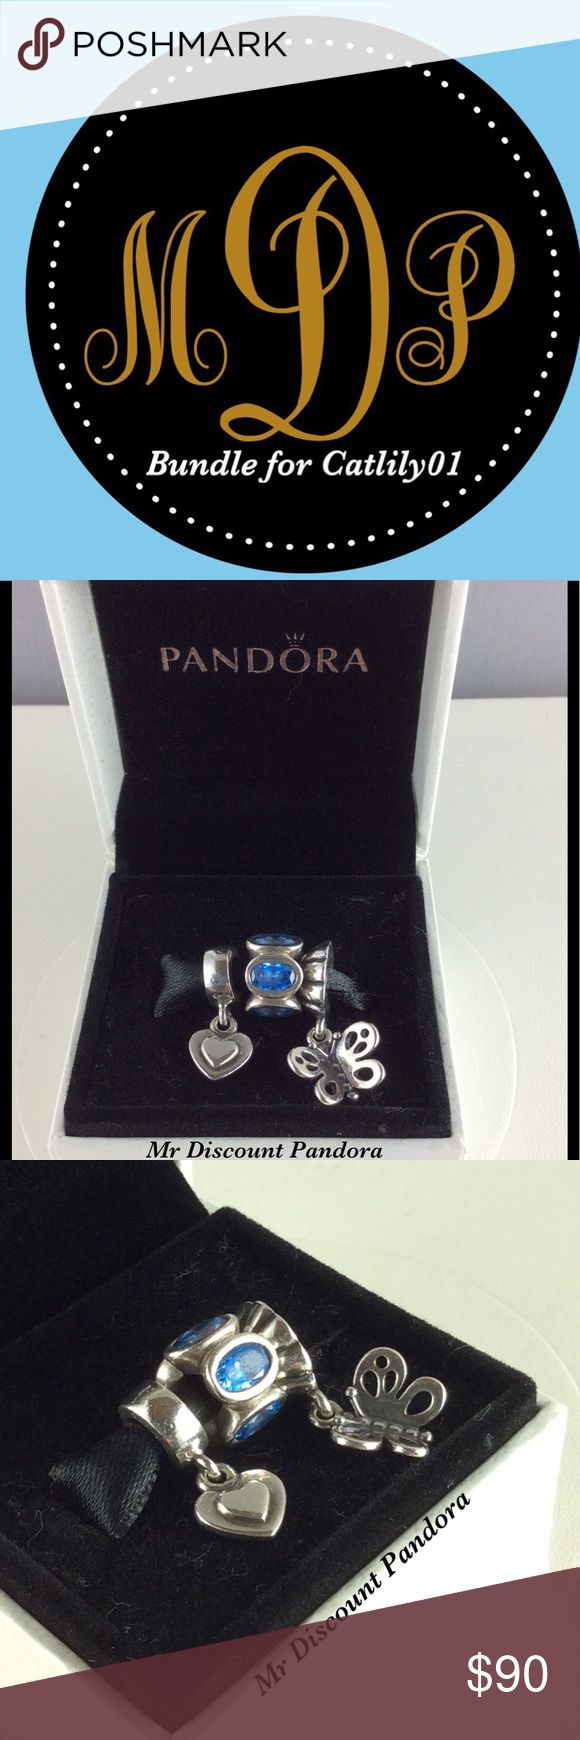 Pandora bundle for @catlily01 ($67) 1-100% Authentic Pandora Retired Dangle Heart Charm #790374  Signature markings ALE S925  Condition: Excellent   1-100% Authentic Pandora 1/2 Best Friend Butterfly Charm #790531  Signature markings ALE S925  Condition: Excellent   1-100% Authentic Pandora Blue Oval Lights Charm #790311CZB  Signature markings ALE S925  Condition: Good,stones show some scratches and cloudiness from normal wear and tear. See last photos (SOLD AS IS)  🔵PRICE IS FIRM ⚫️NOT…